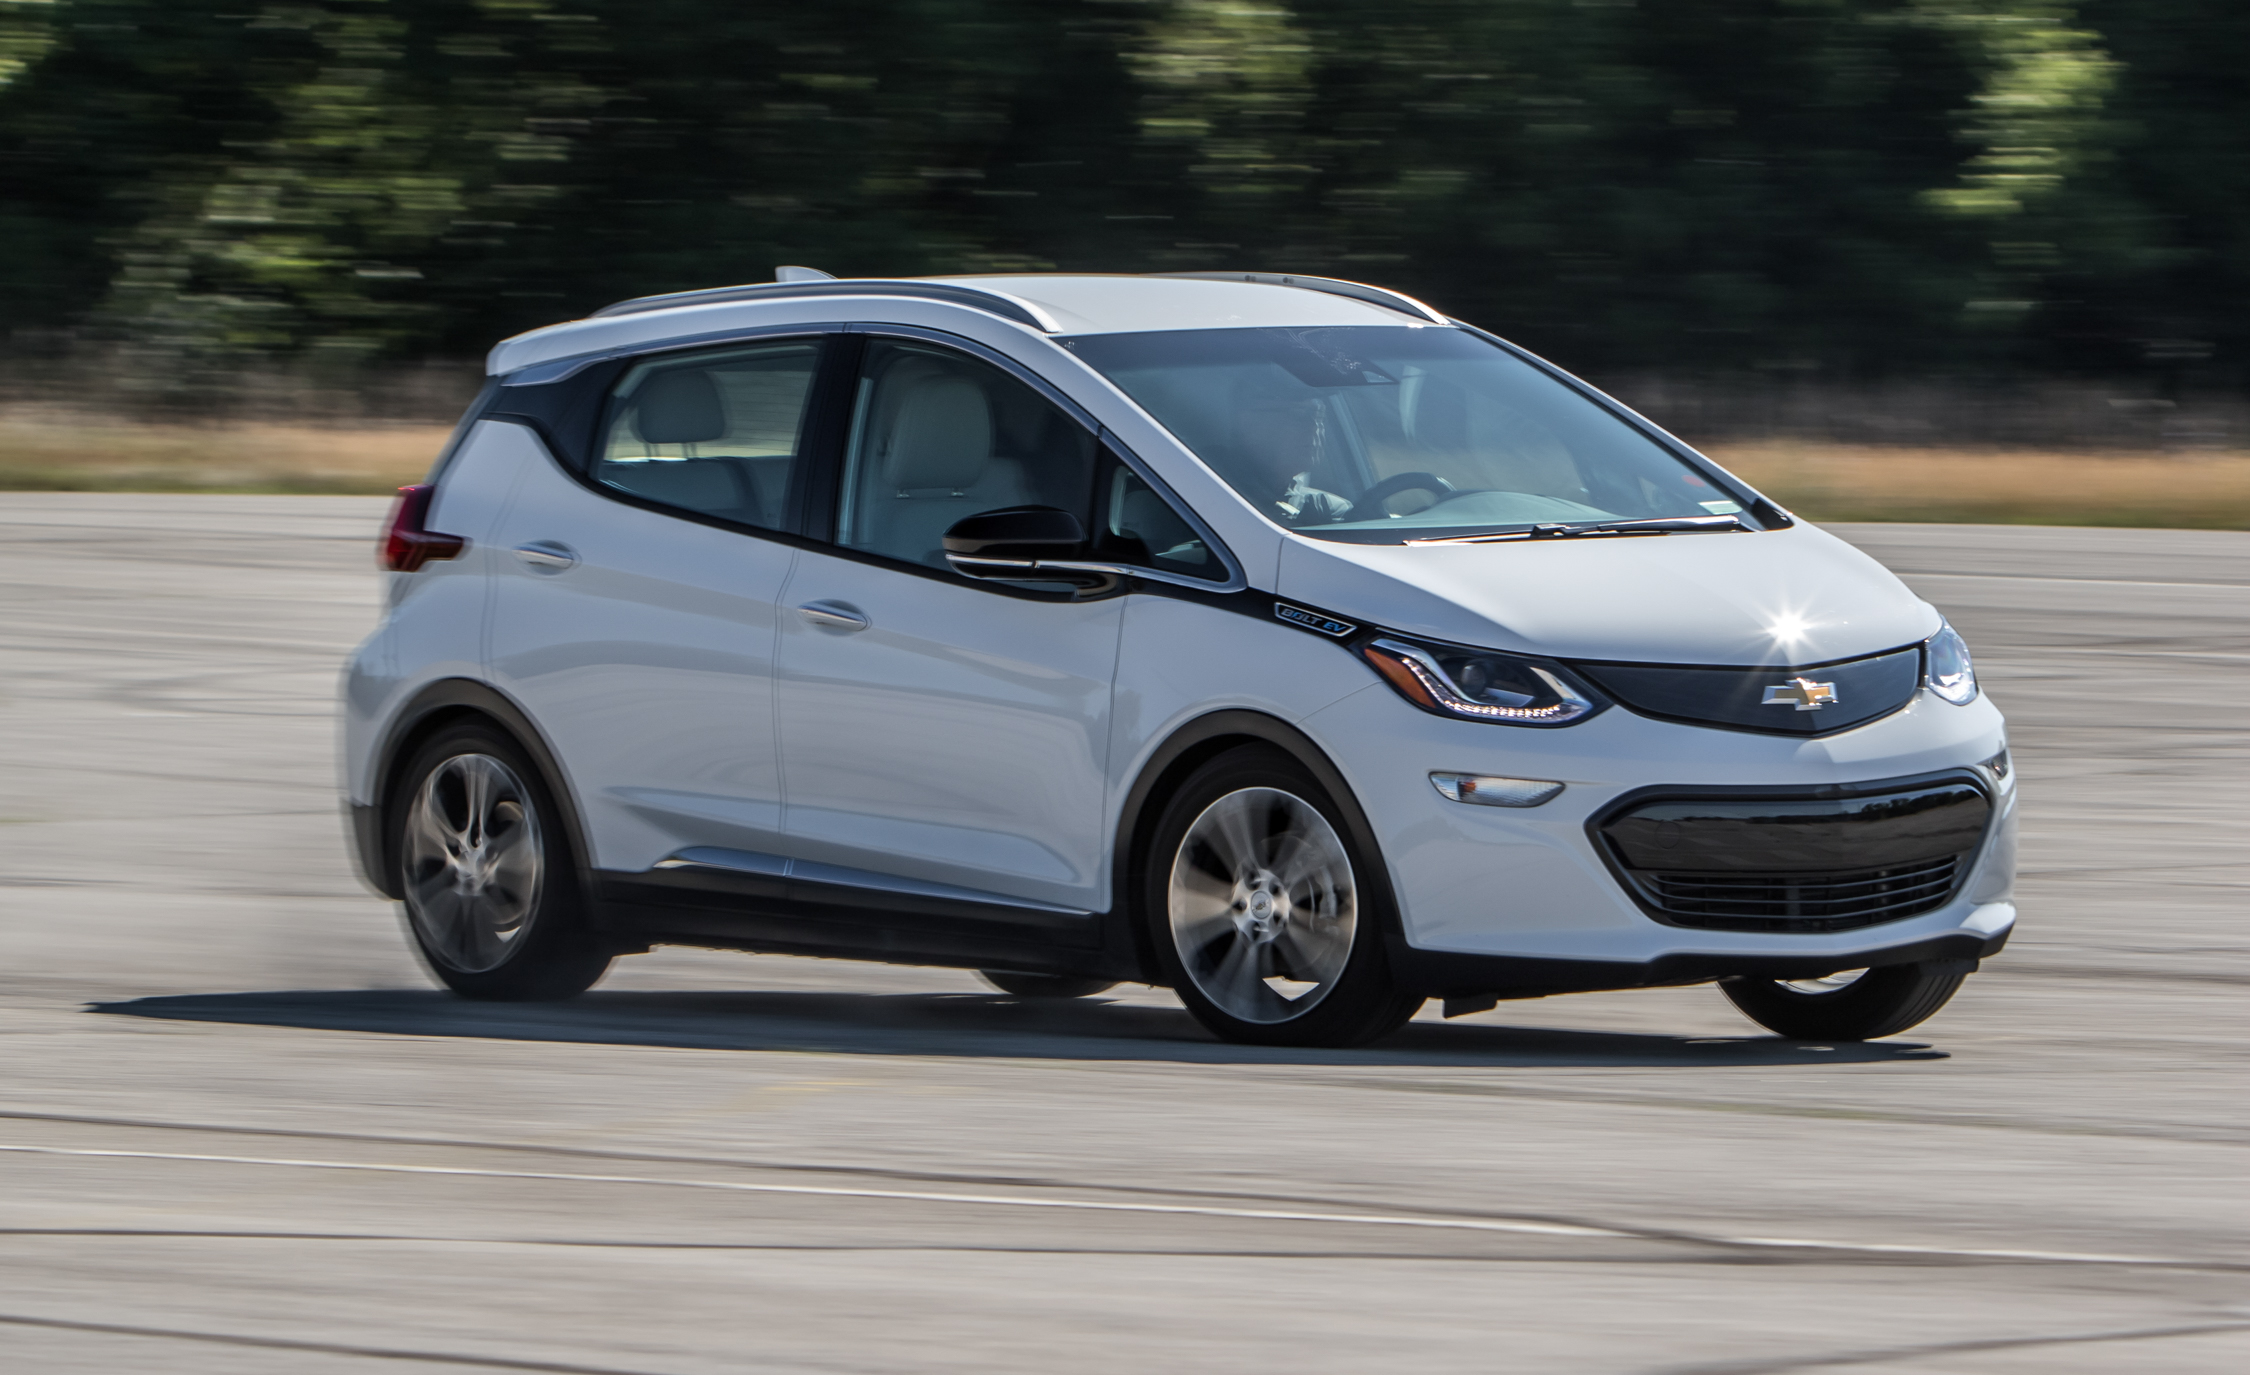 2017 Chevrolet Bolt Ev Test Drive (Photo 11 of 12)